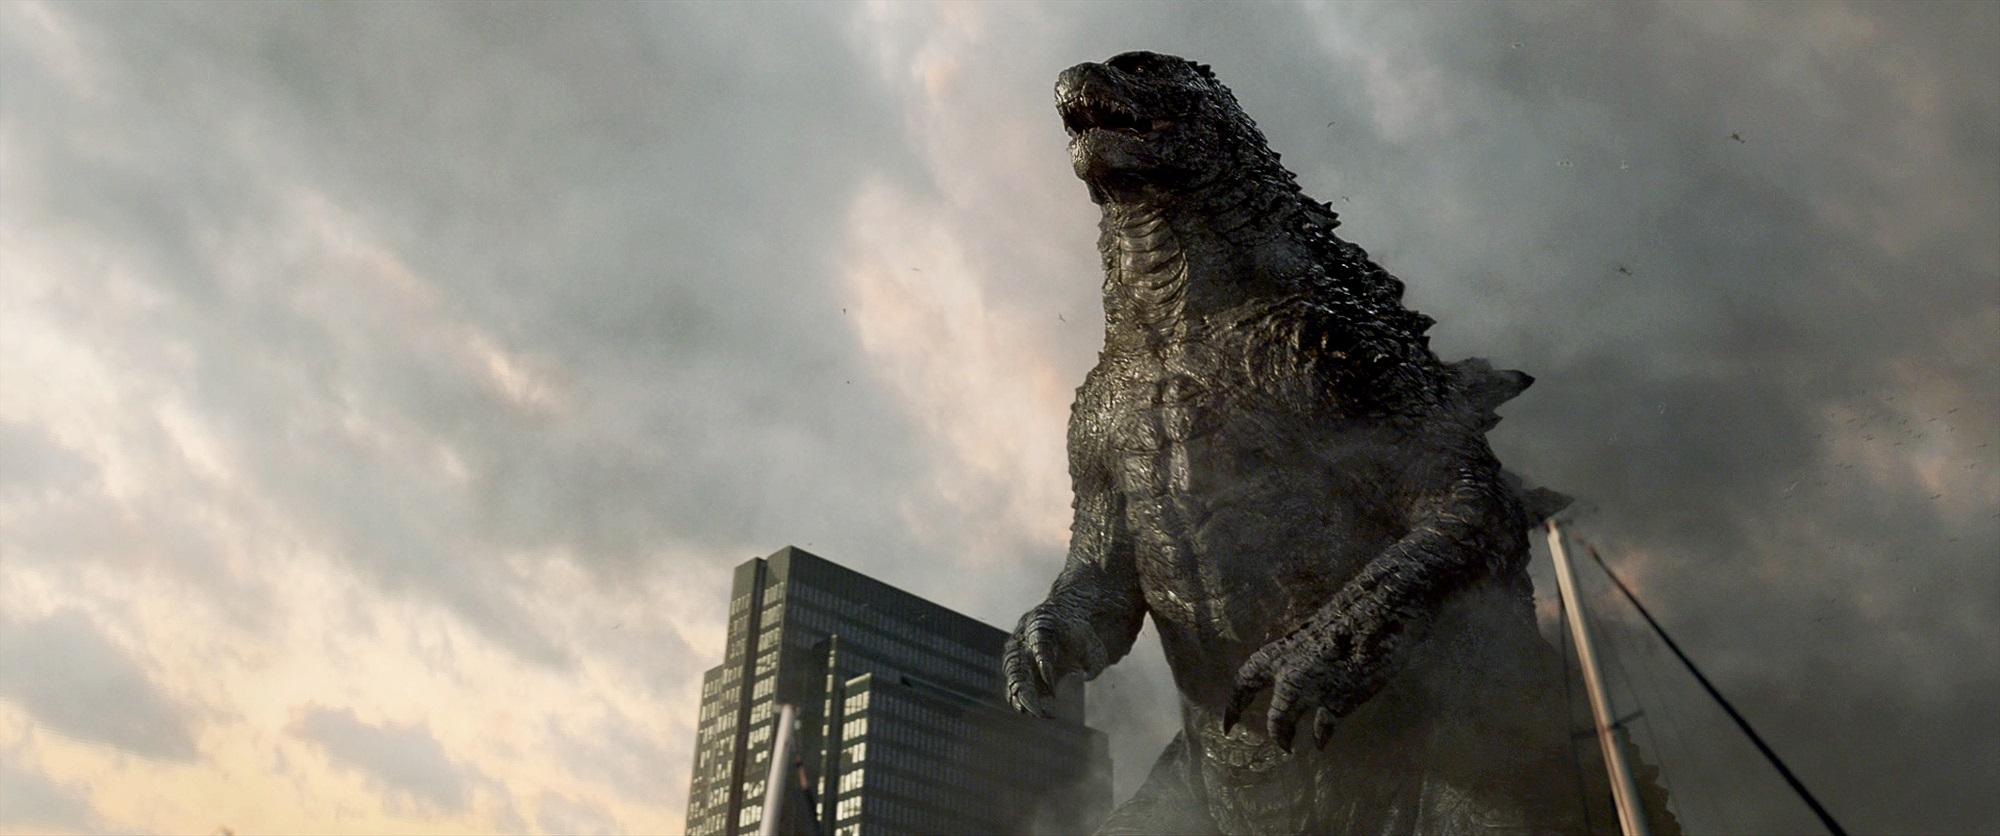 godzilla16 Warner Bros. Gearing Up for Godzilla Sequel